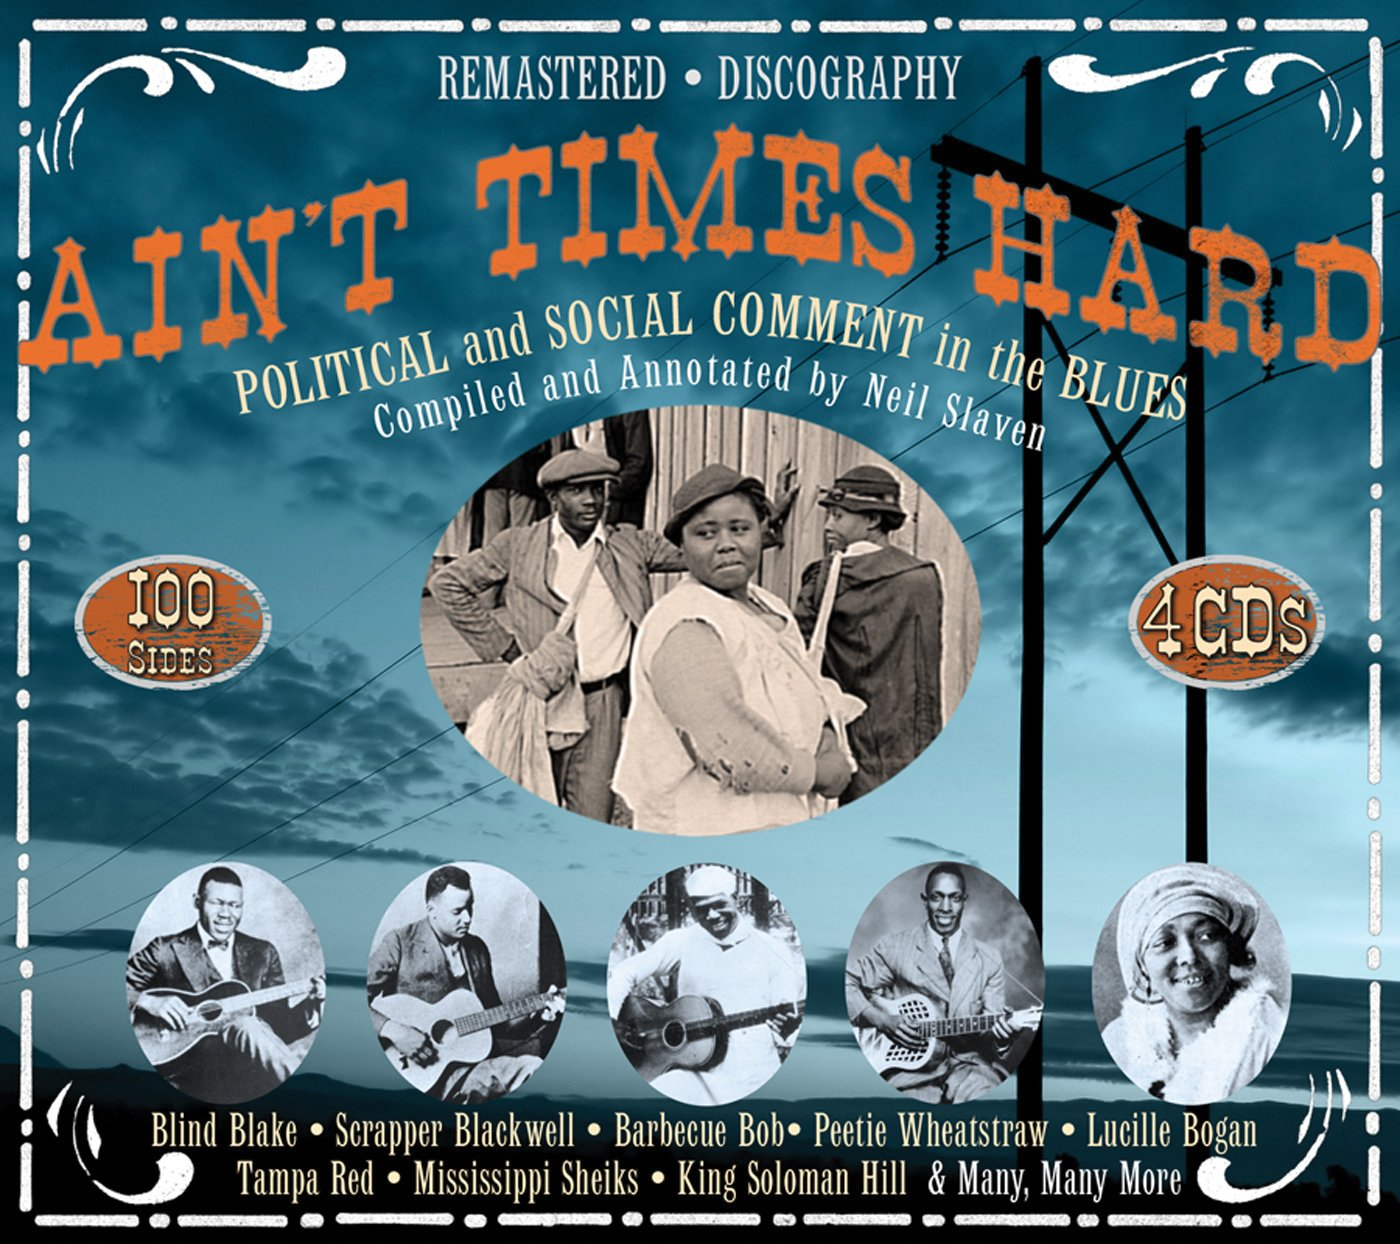 Aint's Times Hard: Political and Social Comment In the Blues